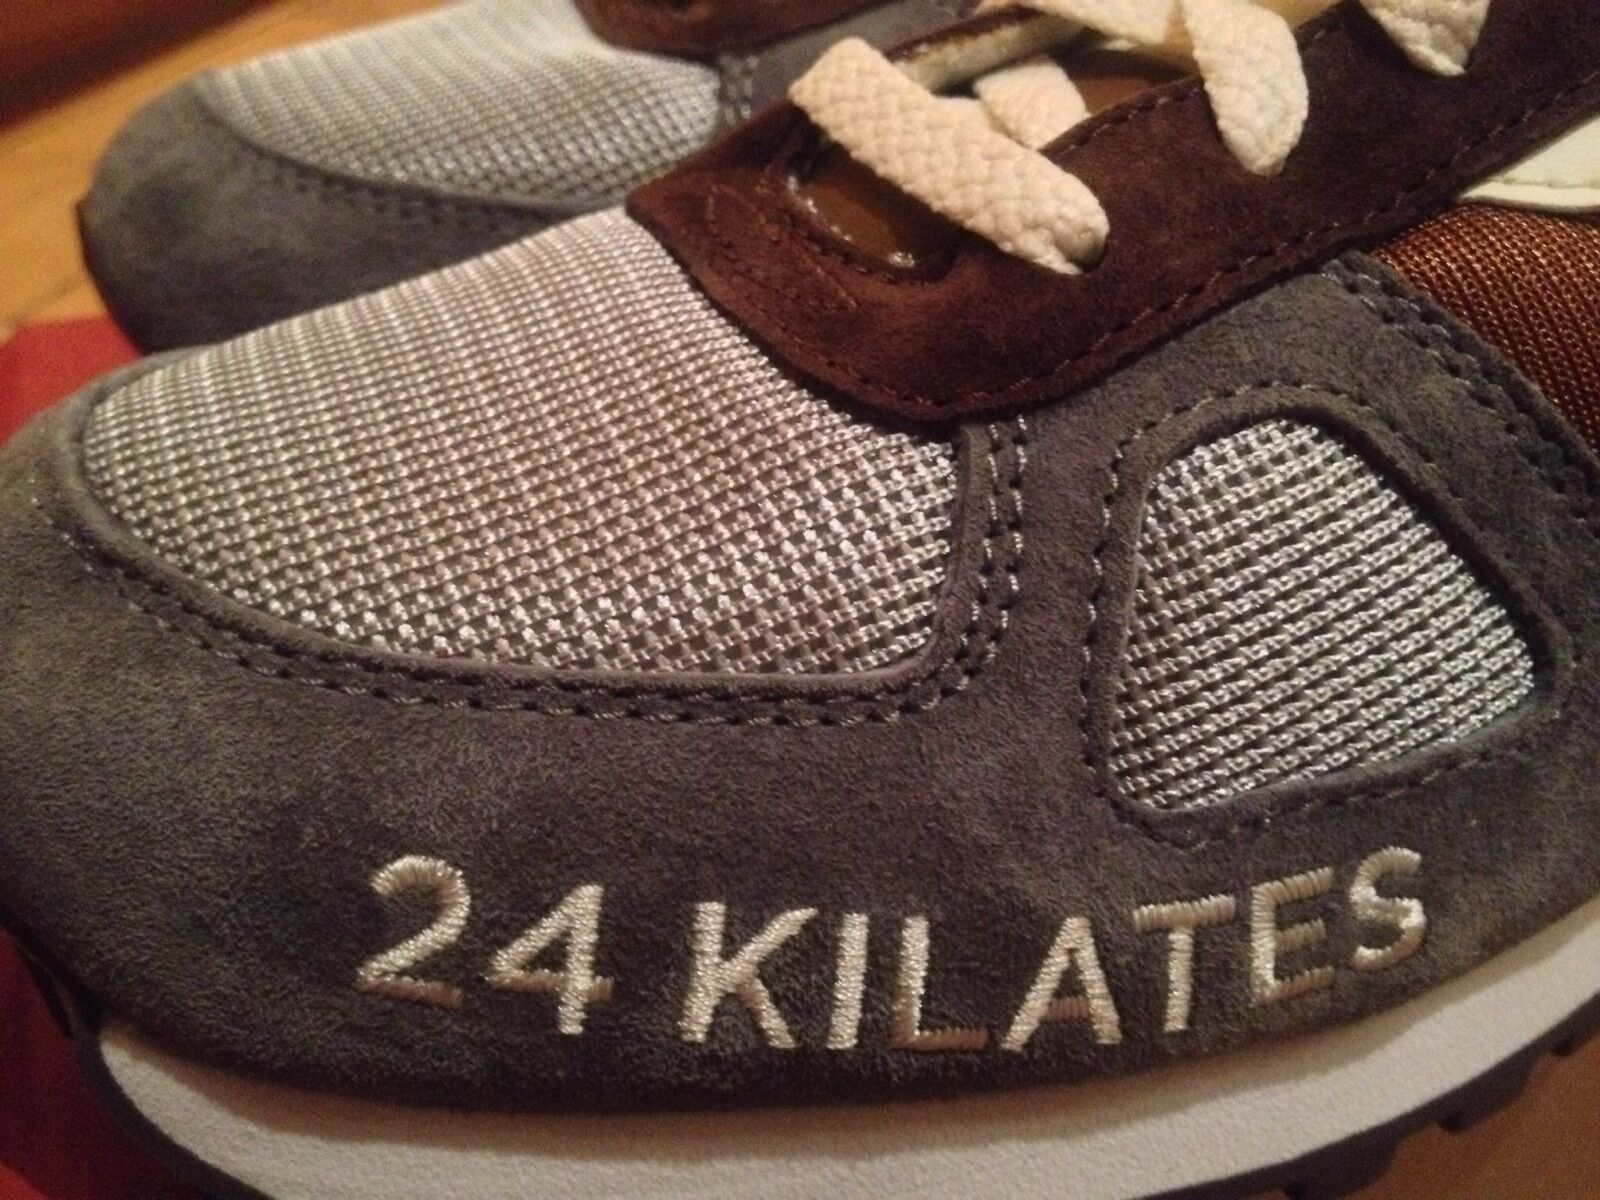 SAUCONY X 24 kilates Ombra Originale MONTANA UK11